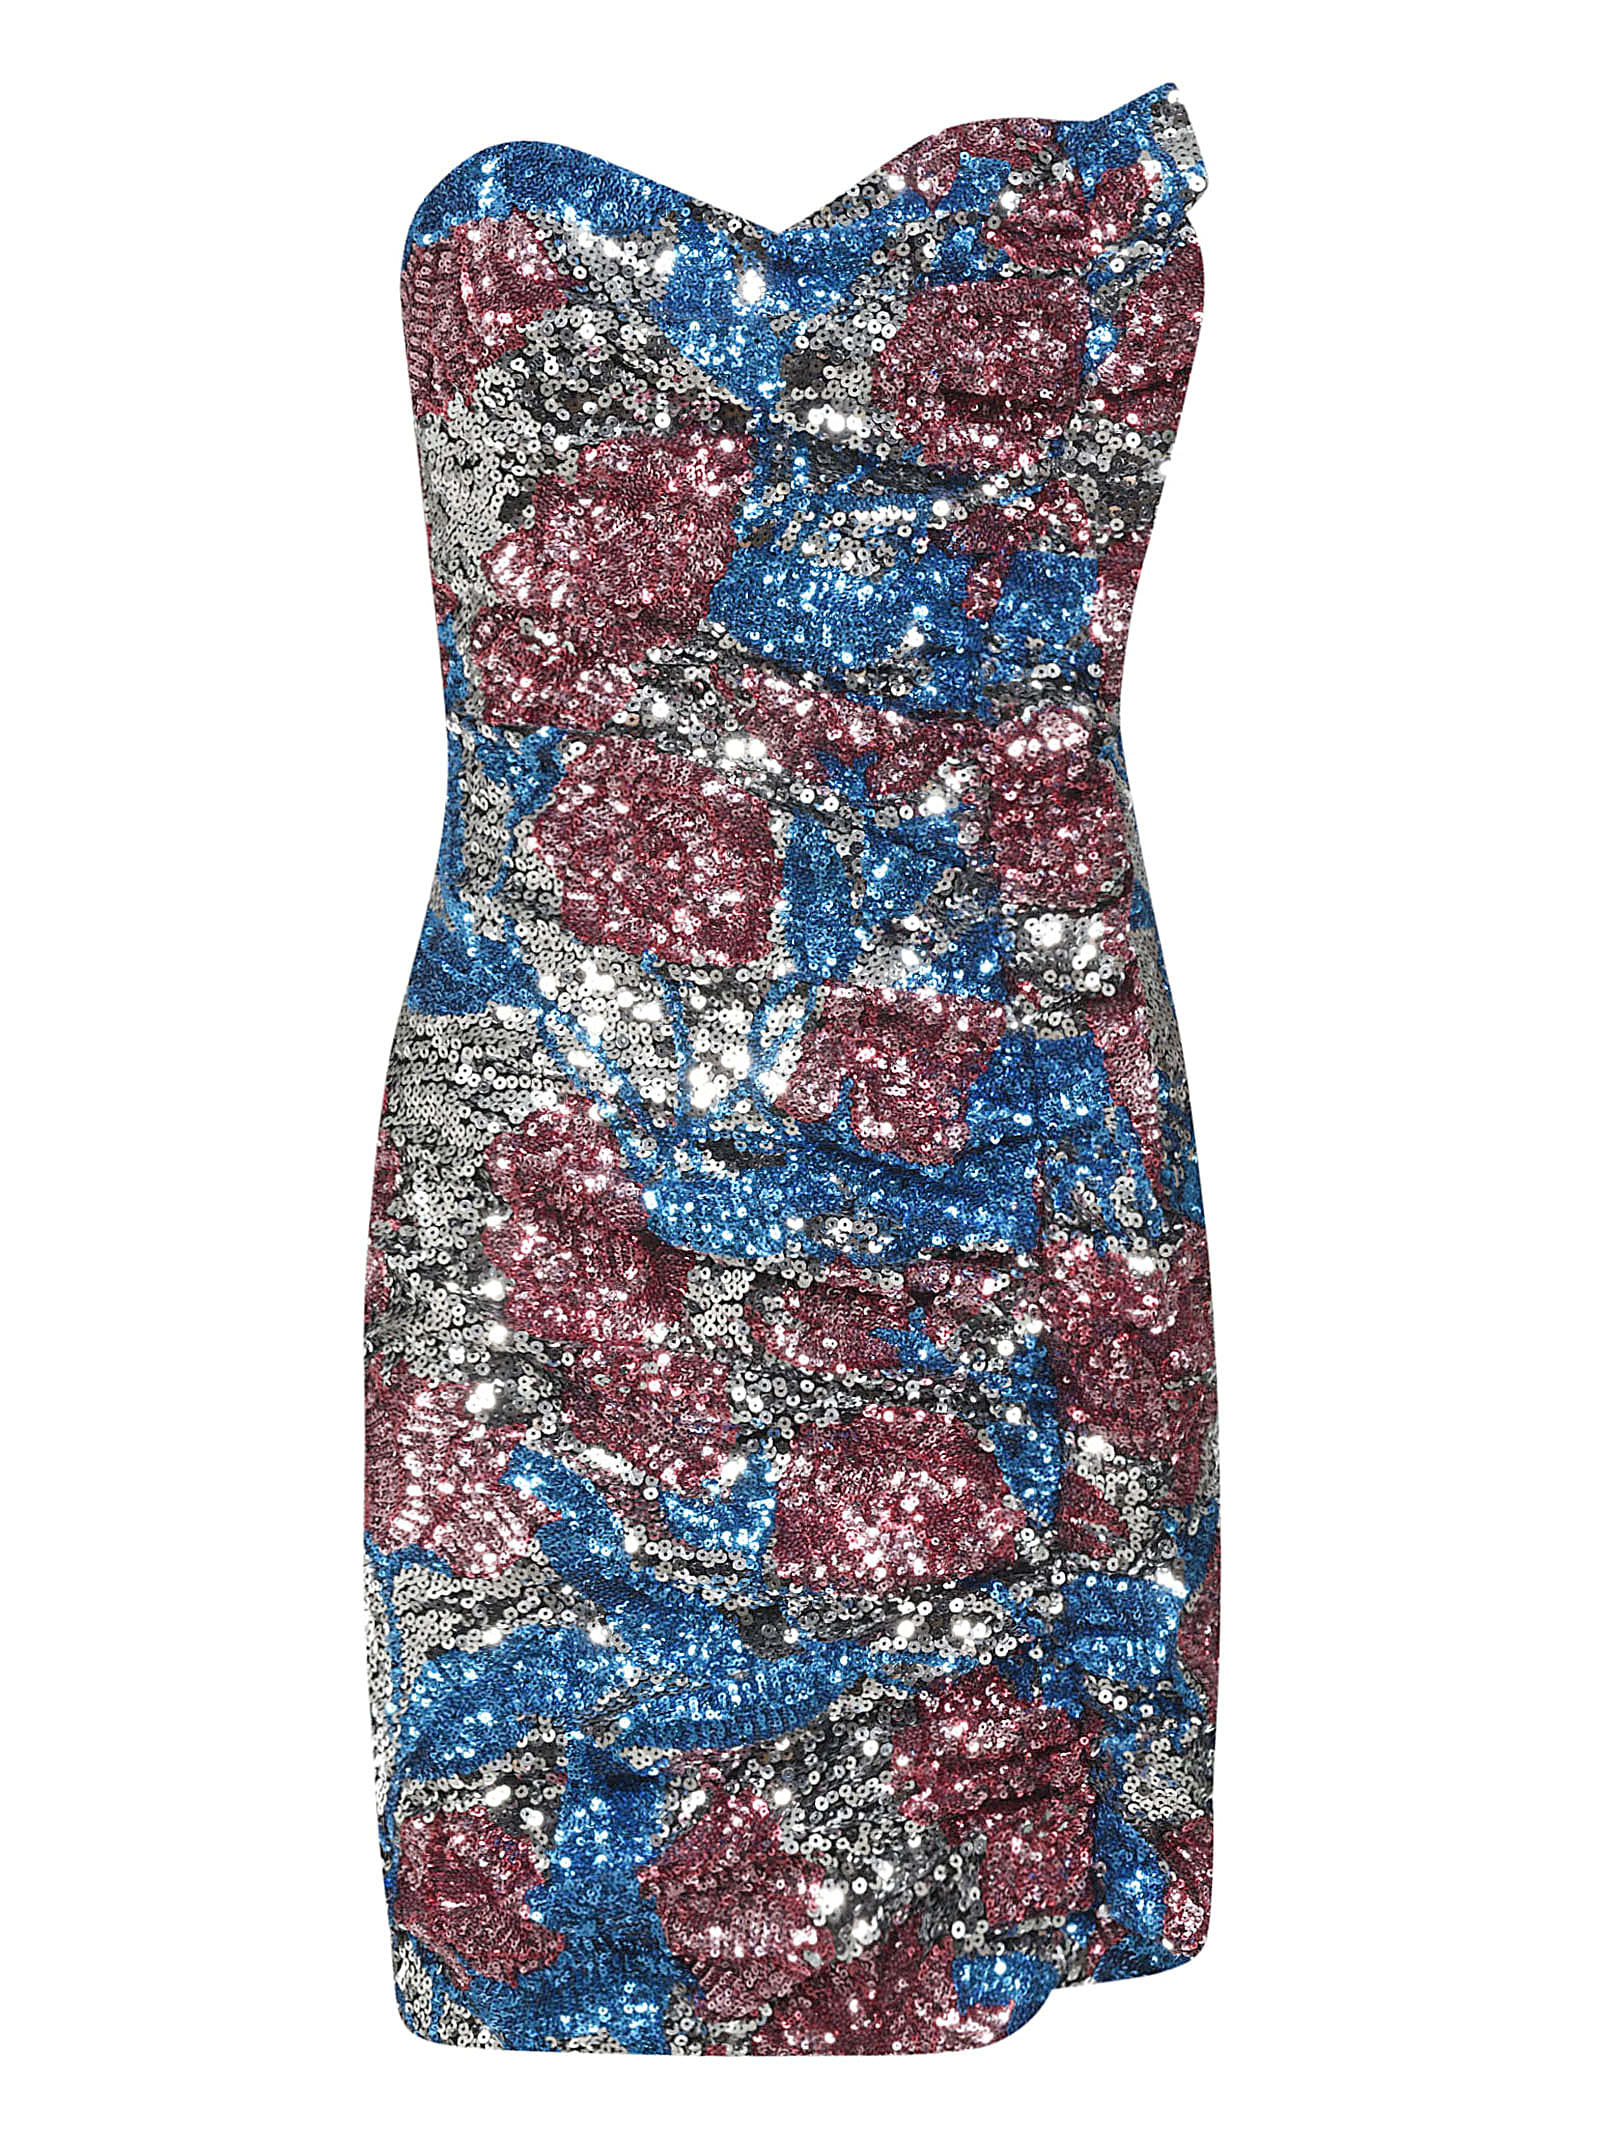 Buy Giuseppe di Morabito Embellished Fitted Dress online, shop Giuseppe di Morabito with free shipping